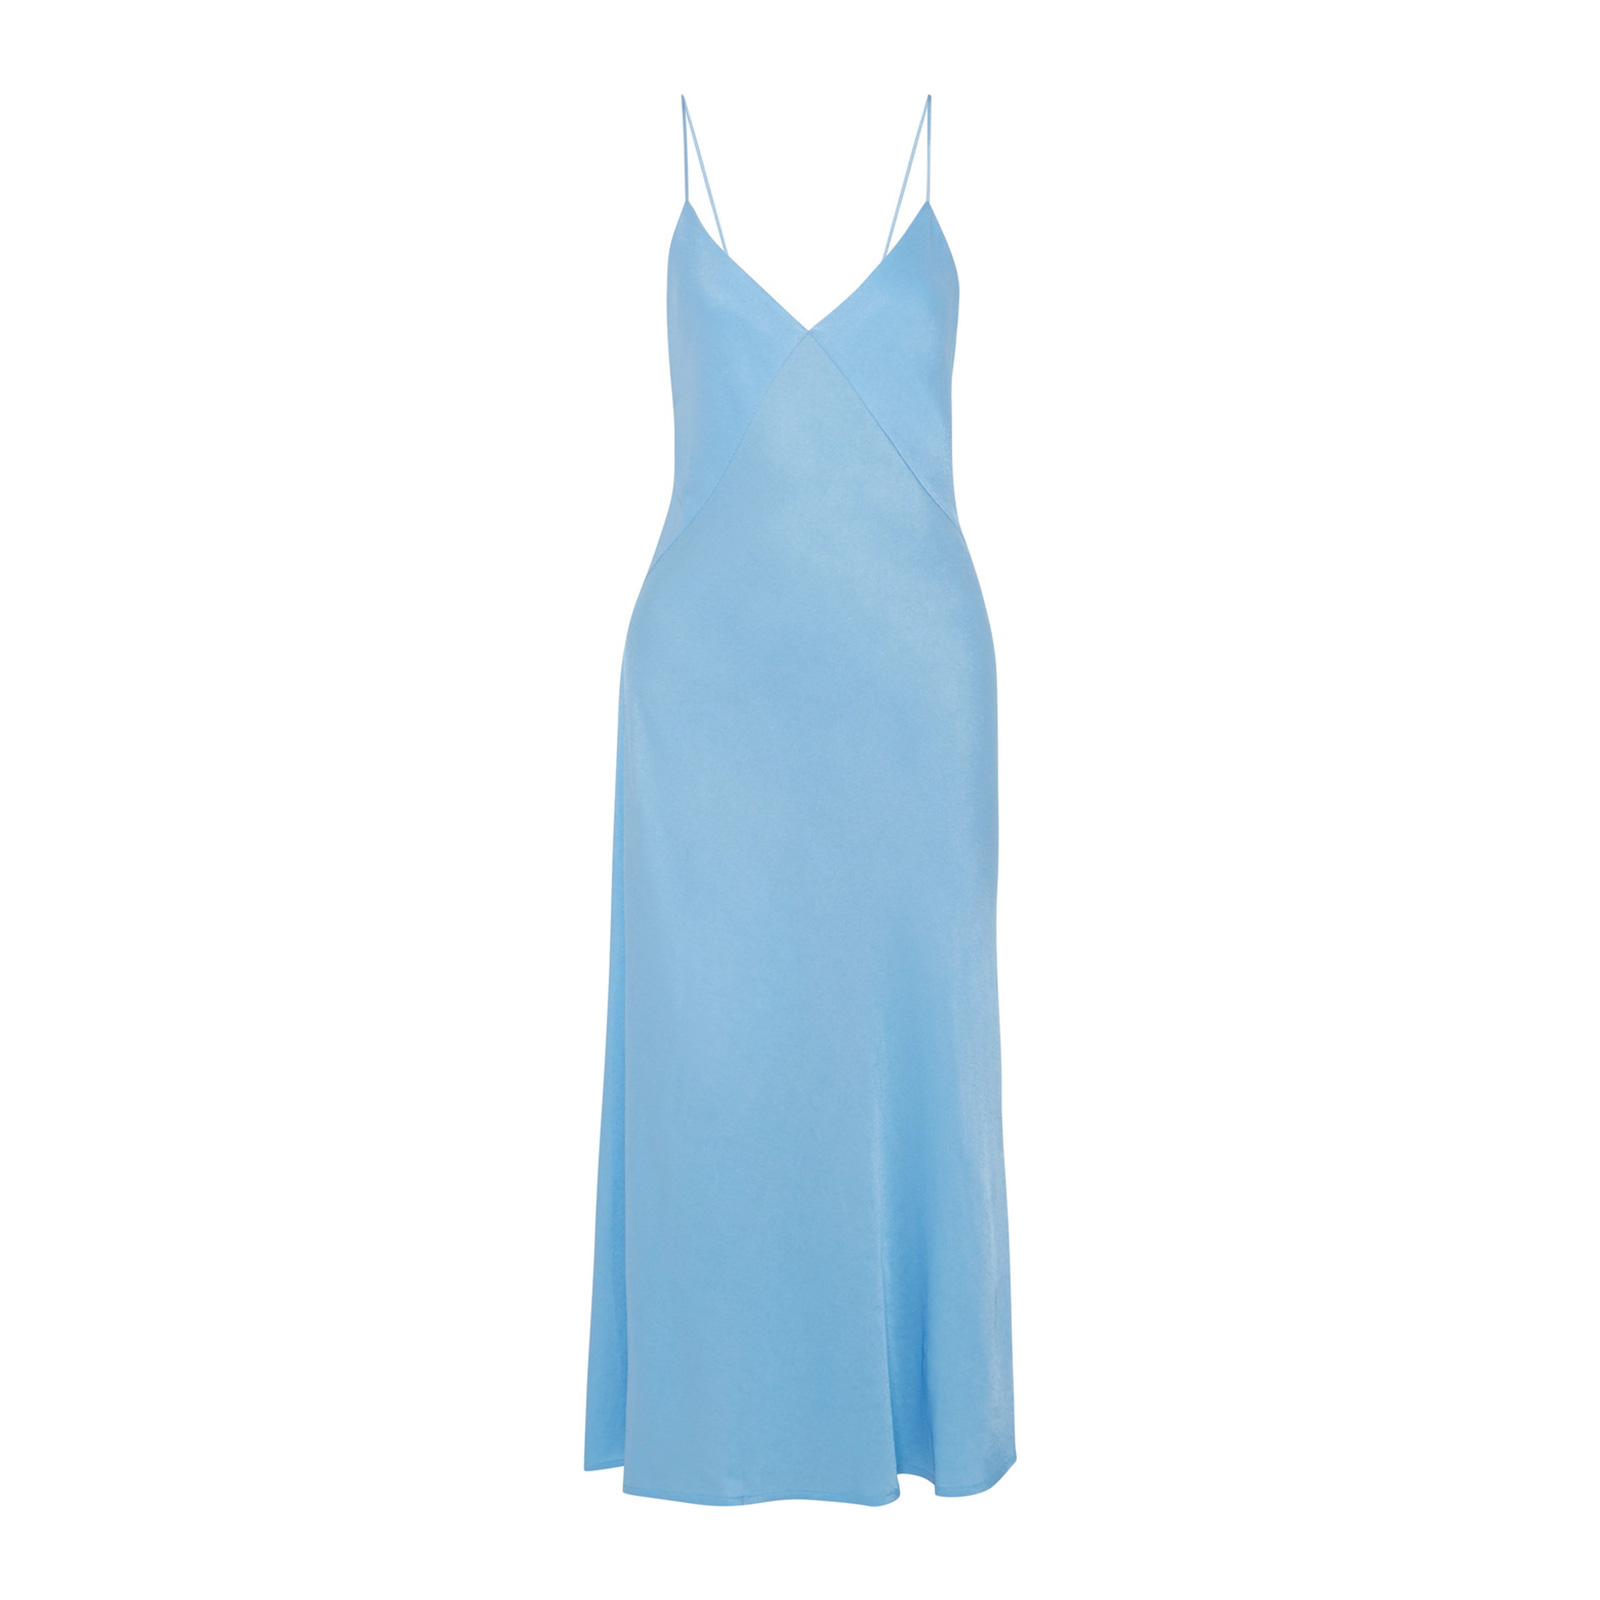 Victoria Beckham Slip-Dress